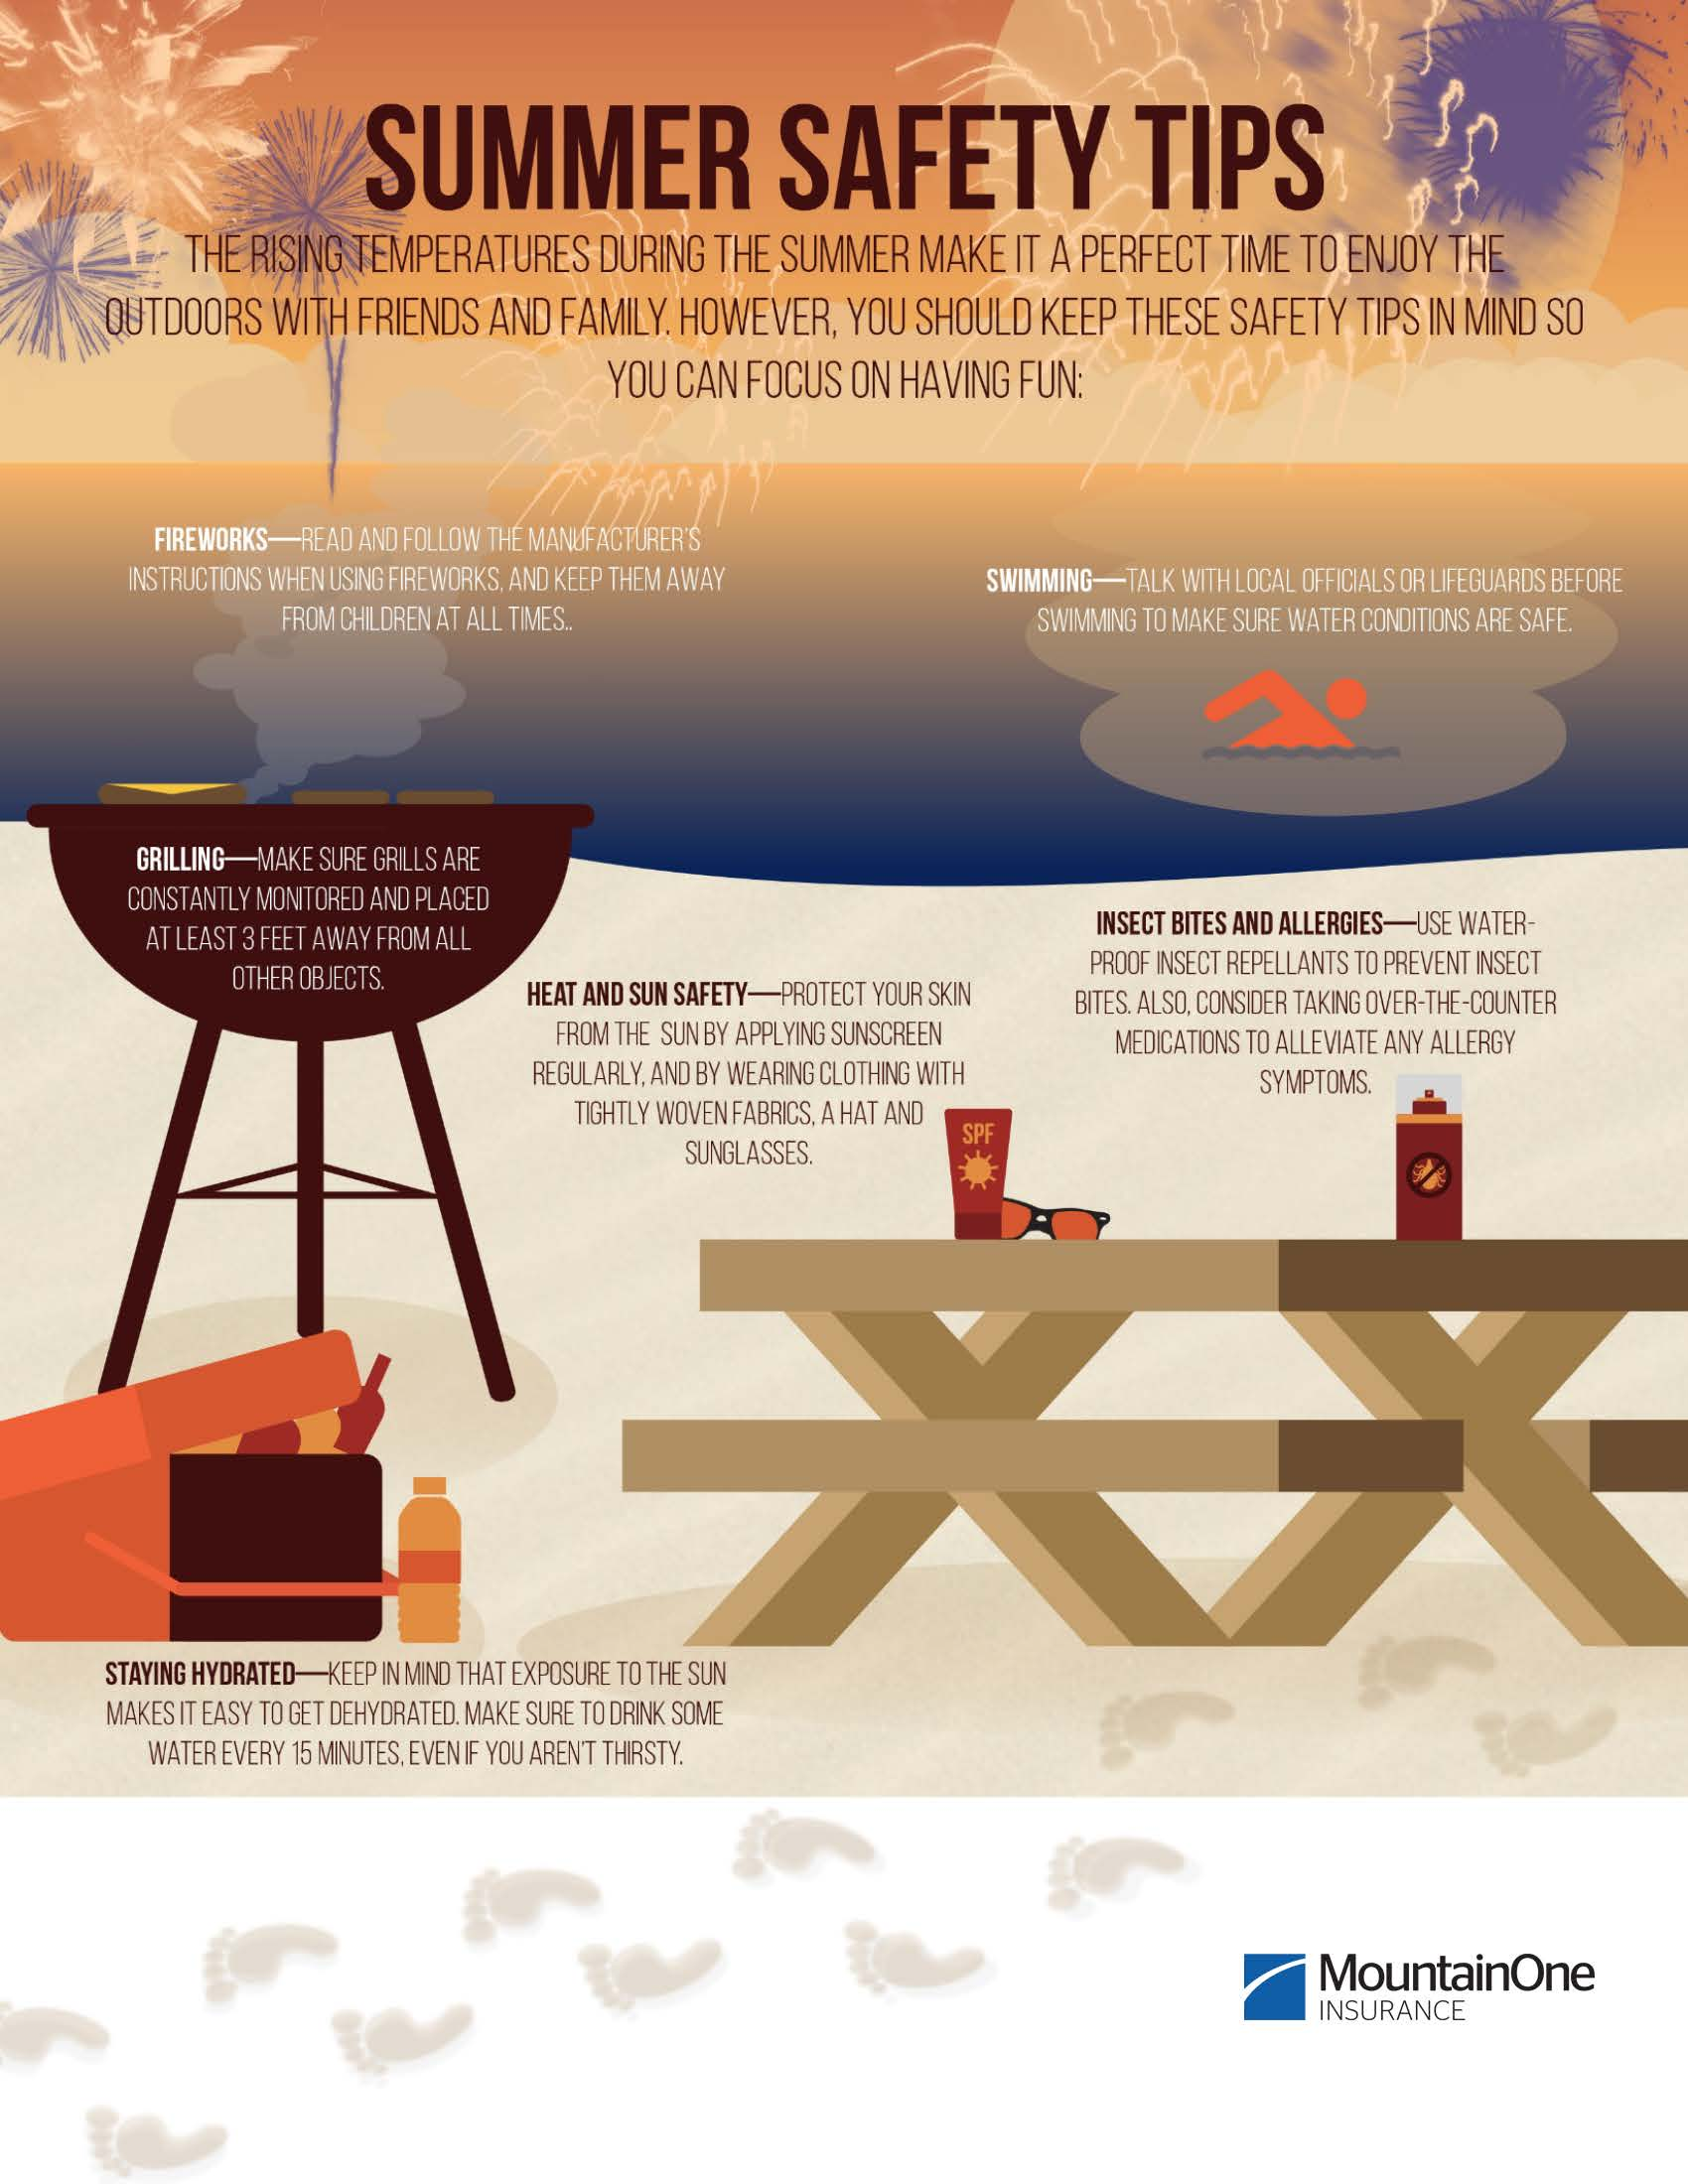 Summer Safety Tips infographic